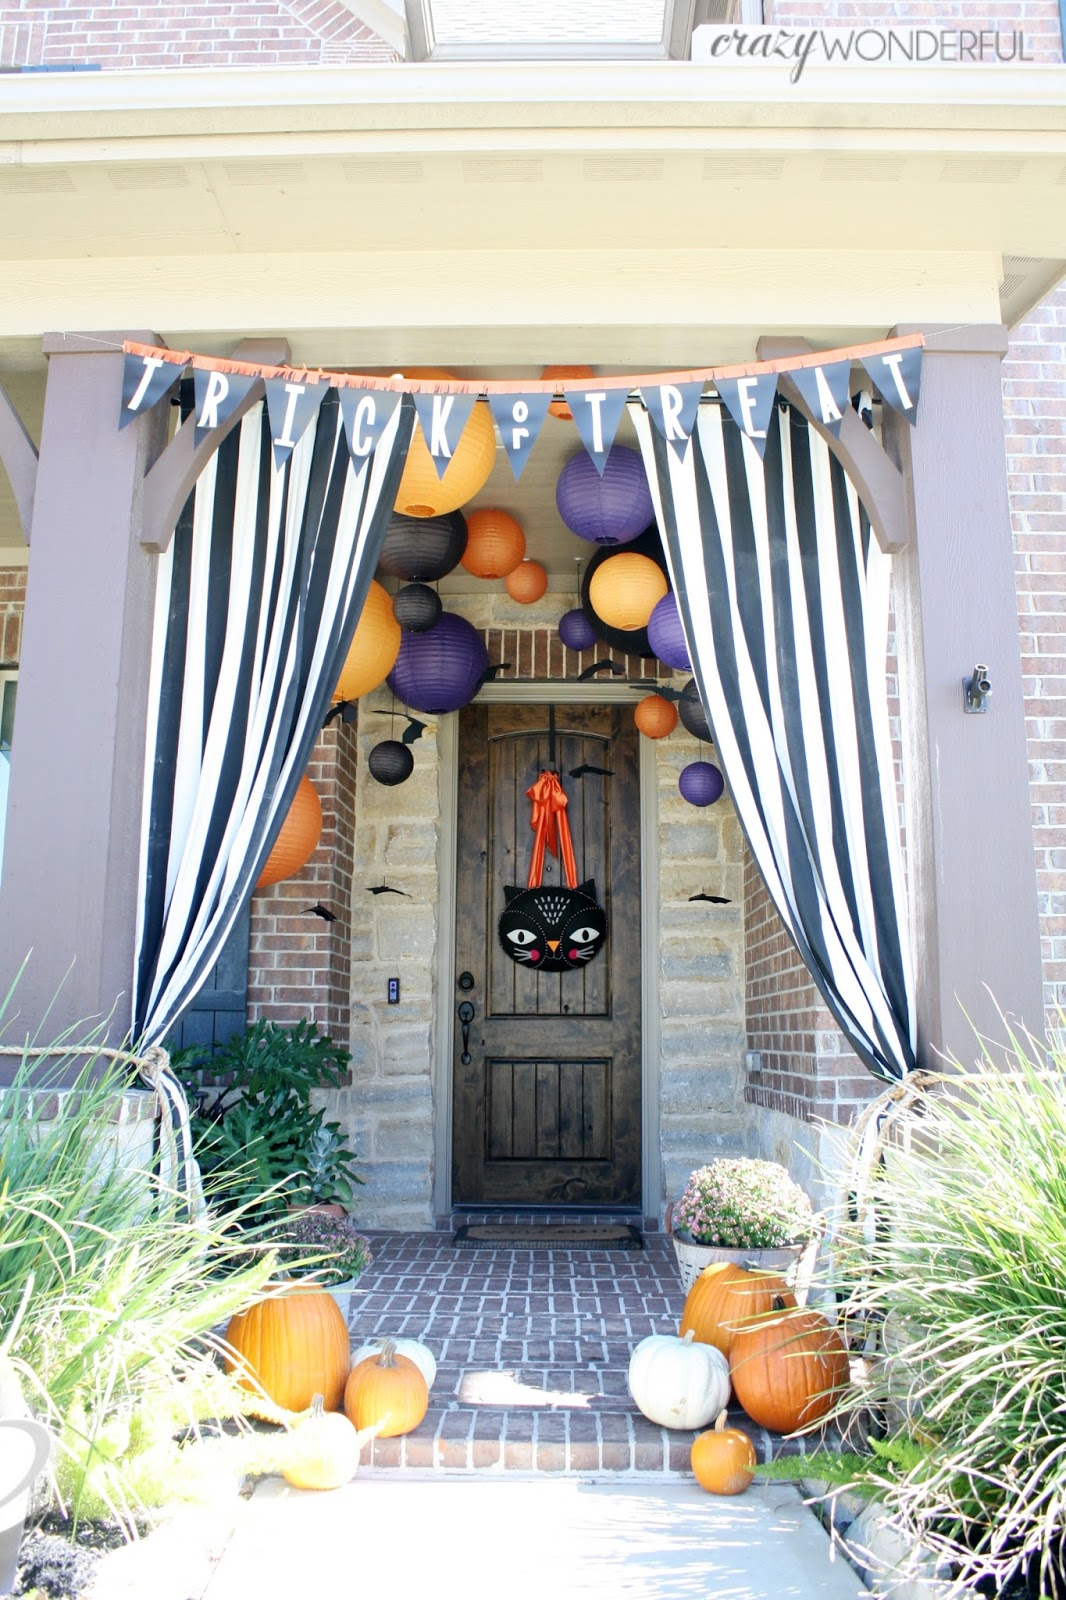 Decorating Ideas > Crazy Wonderful Halloween Porch Decoratio ~ 023923_Halloween Decorating Ideas Porch